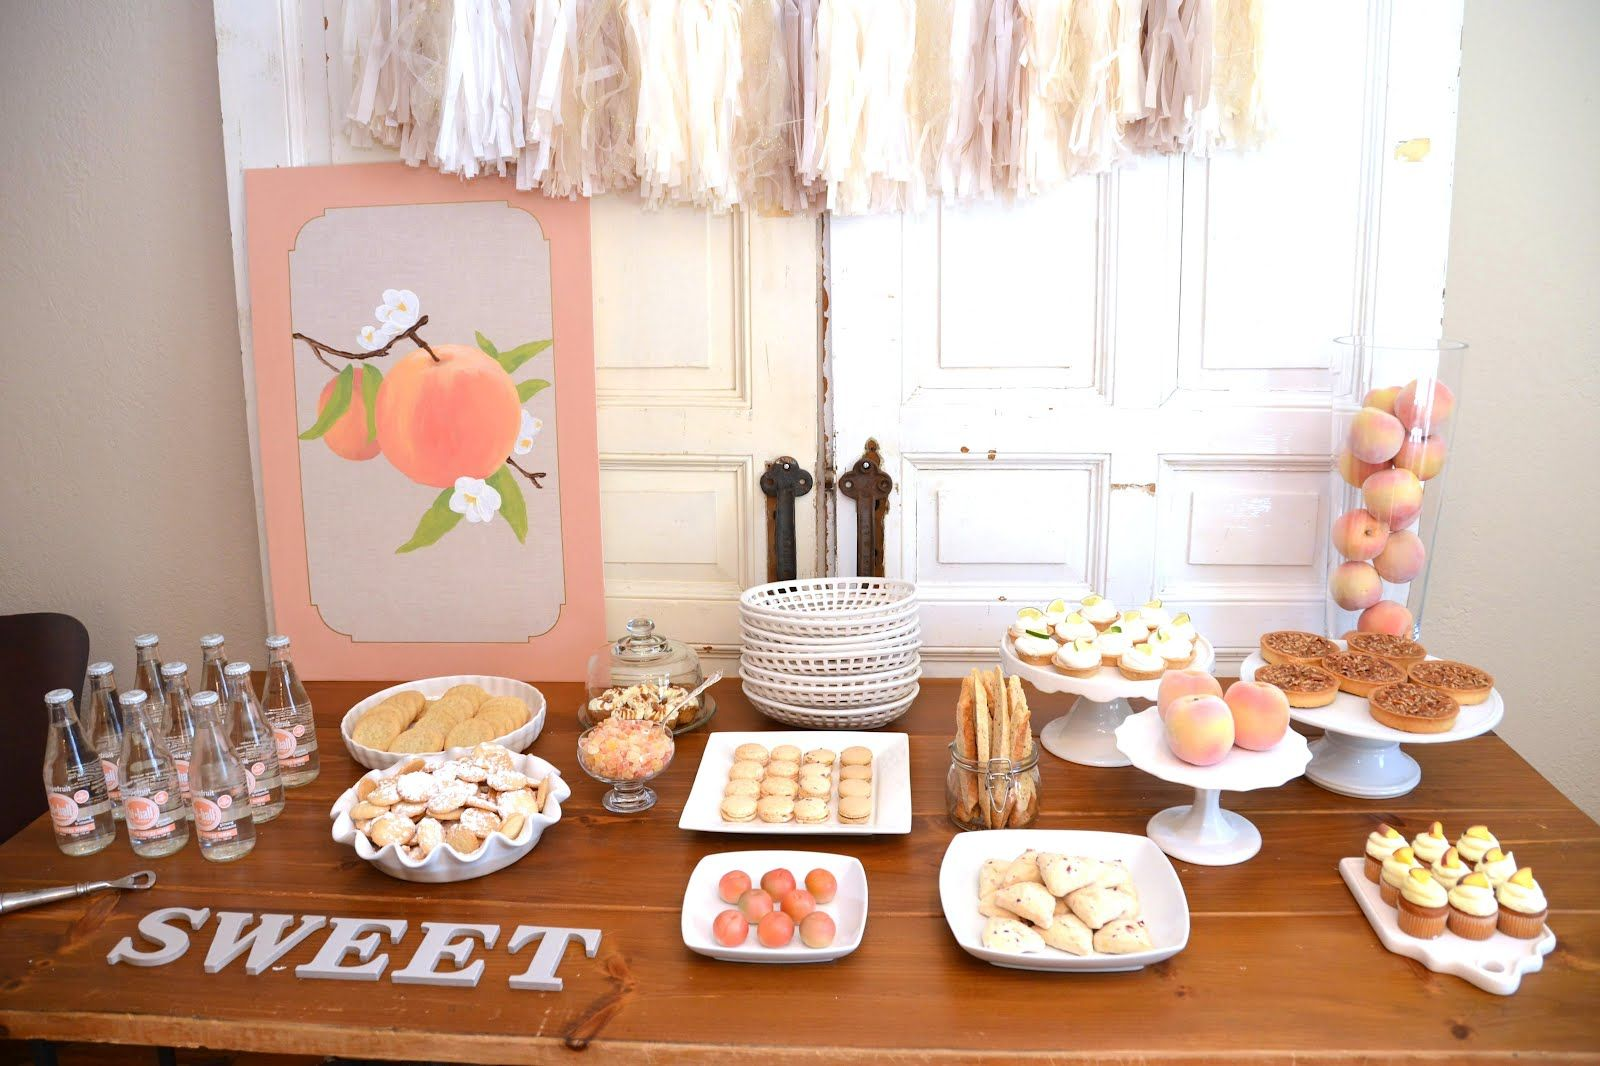 {Sweet Savannah} A BIG Congrats To New Mom Jane! We Were Beyond Excited  When Jane Announced She Was Having A Girl! To Celebrate, We Co.